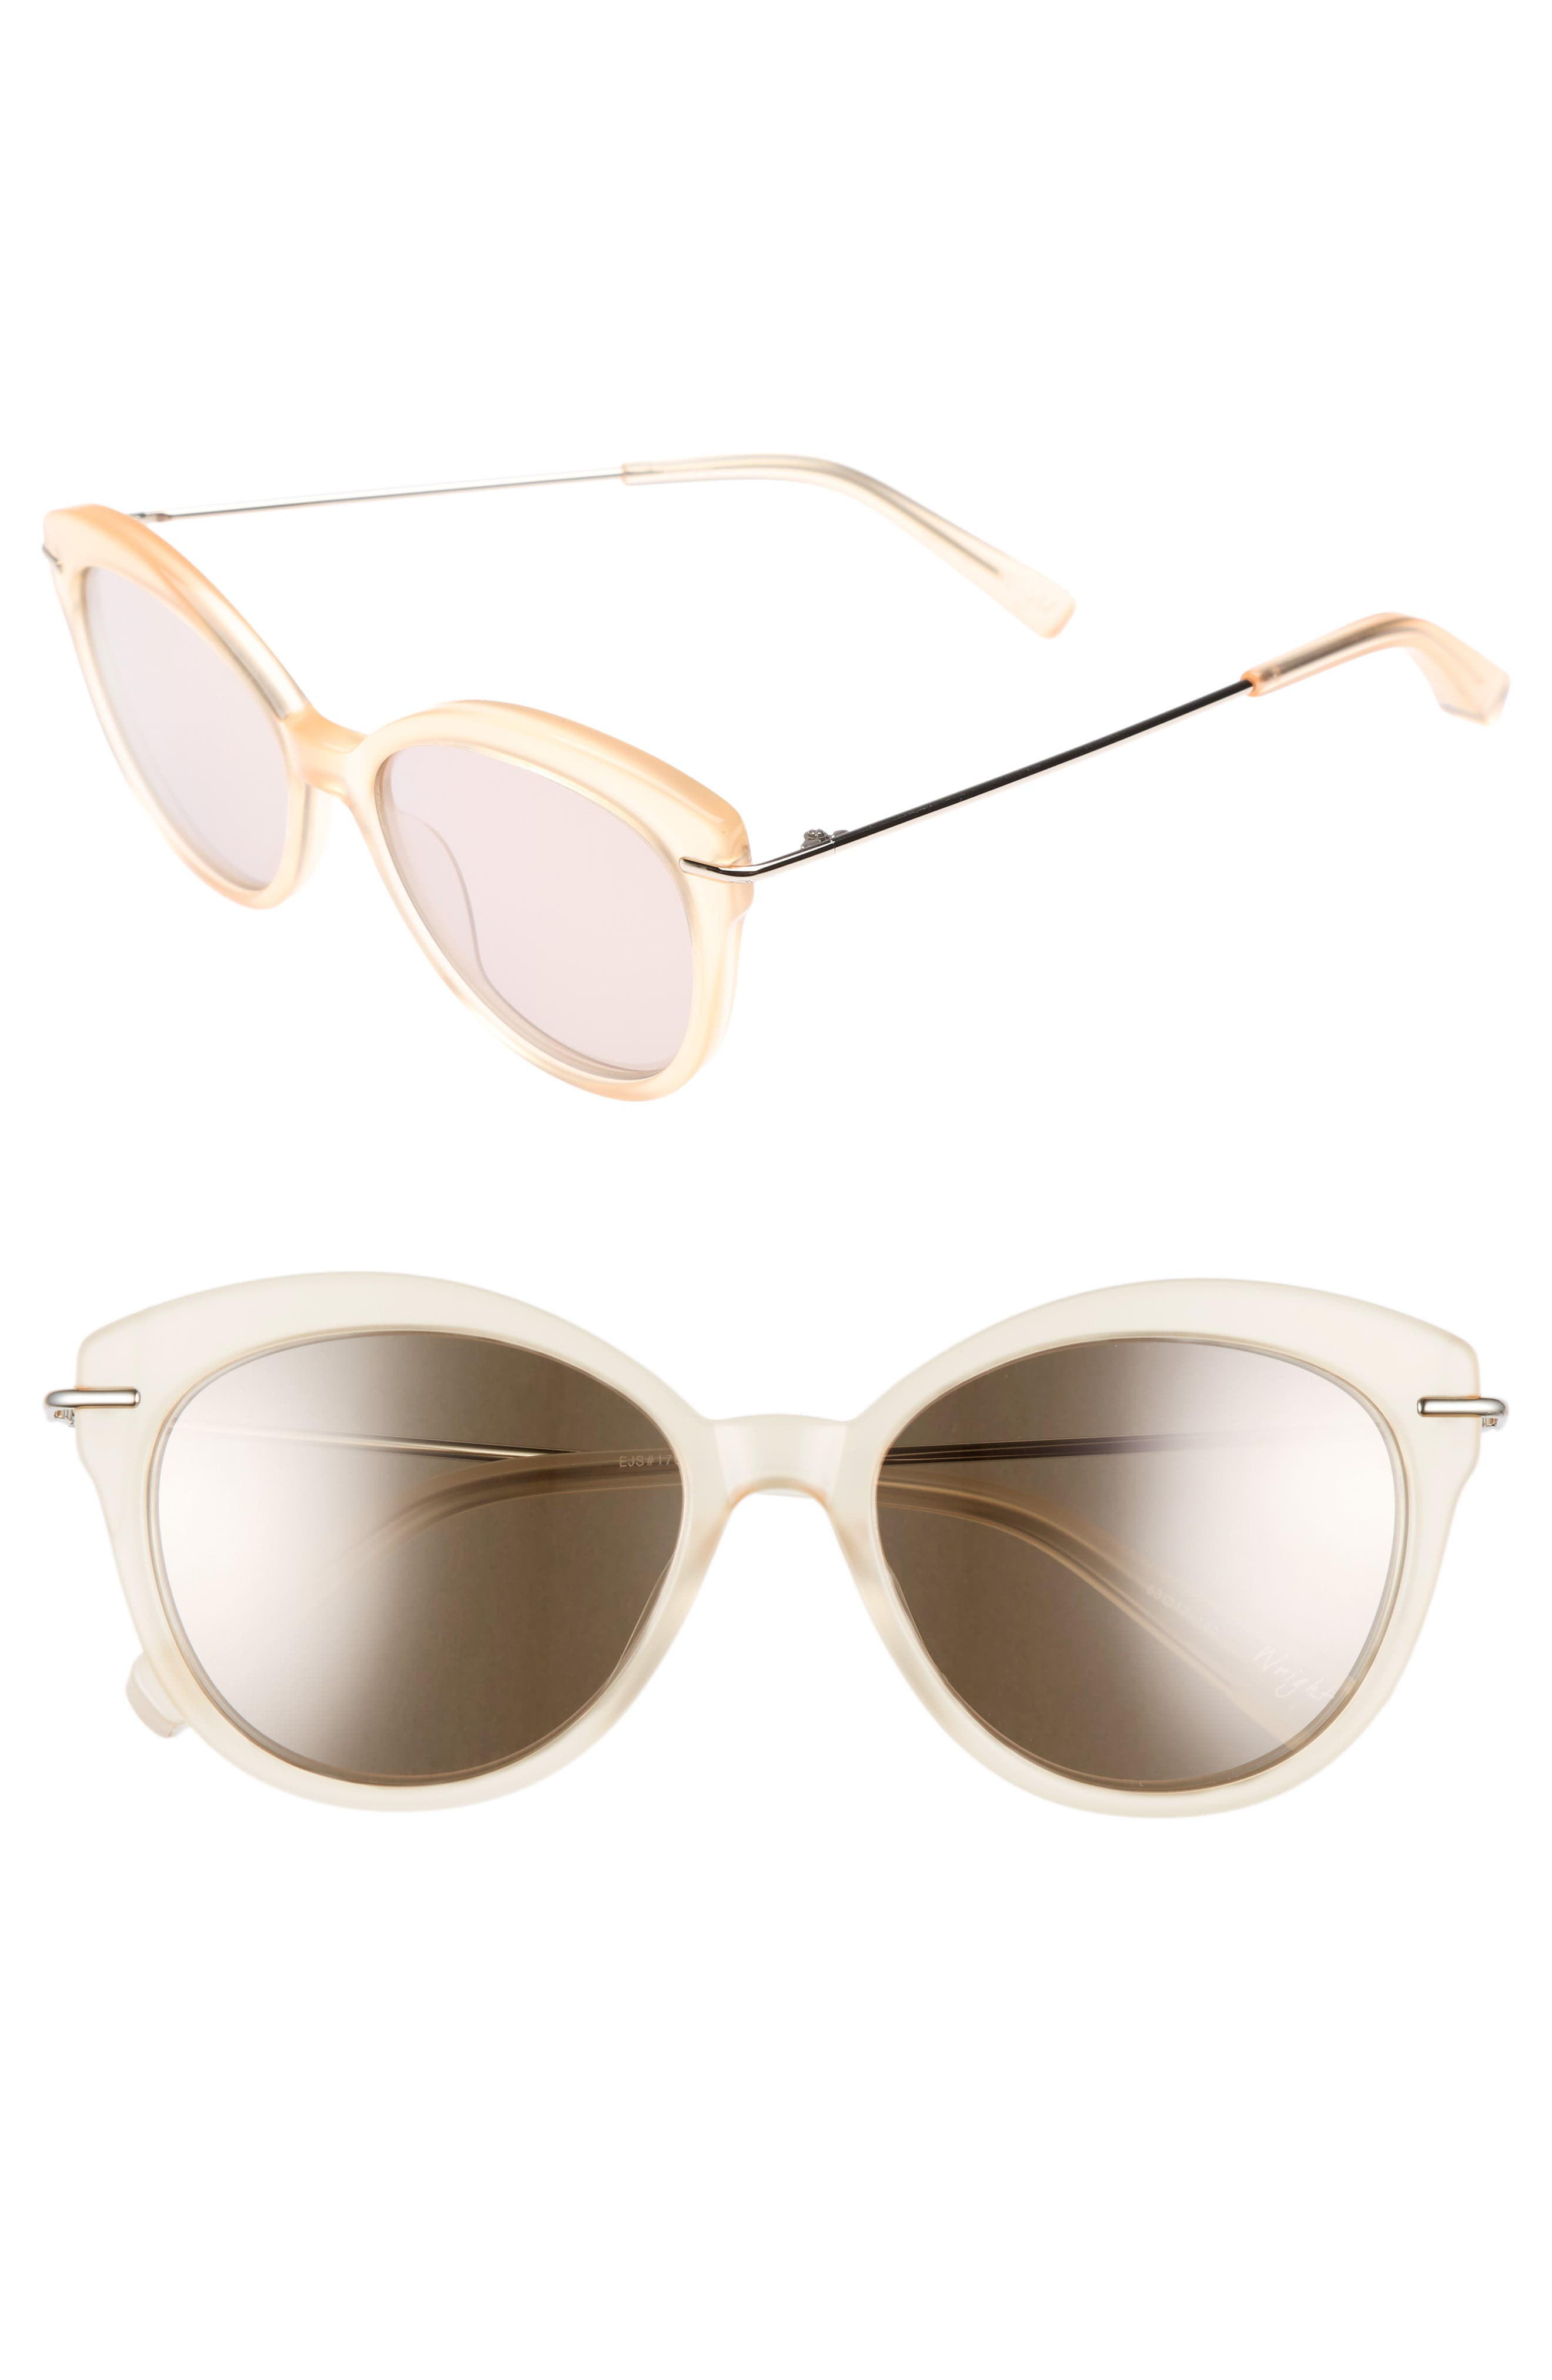 ELIZABETH AND JAMES Wright 53mm Cat Eye Sunglasses, Main, color, 001